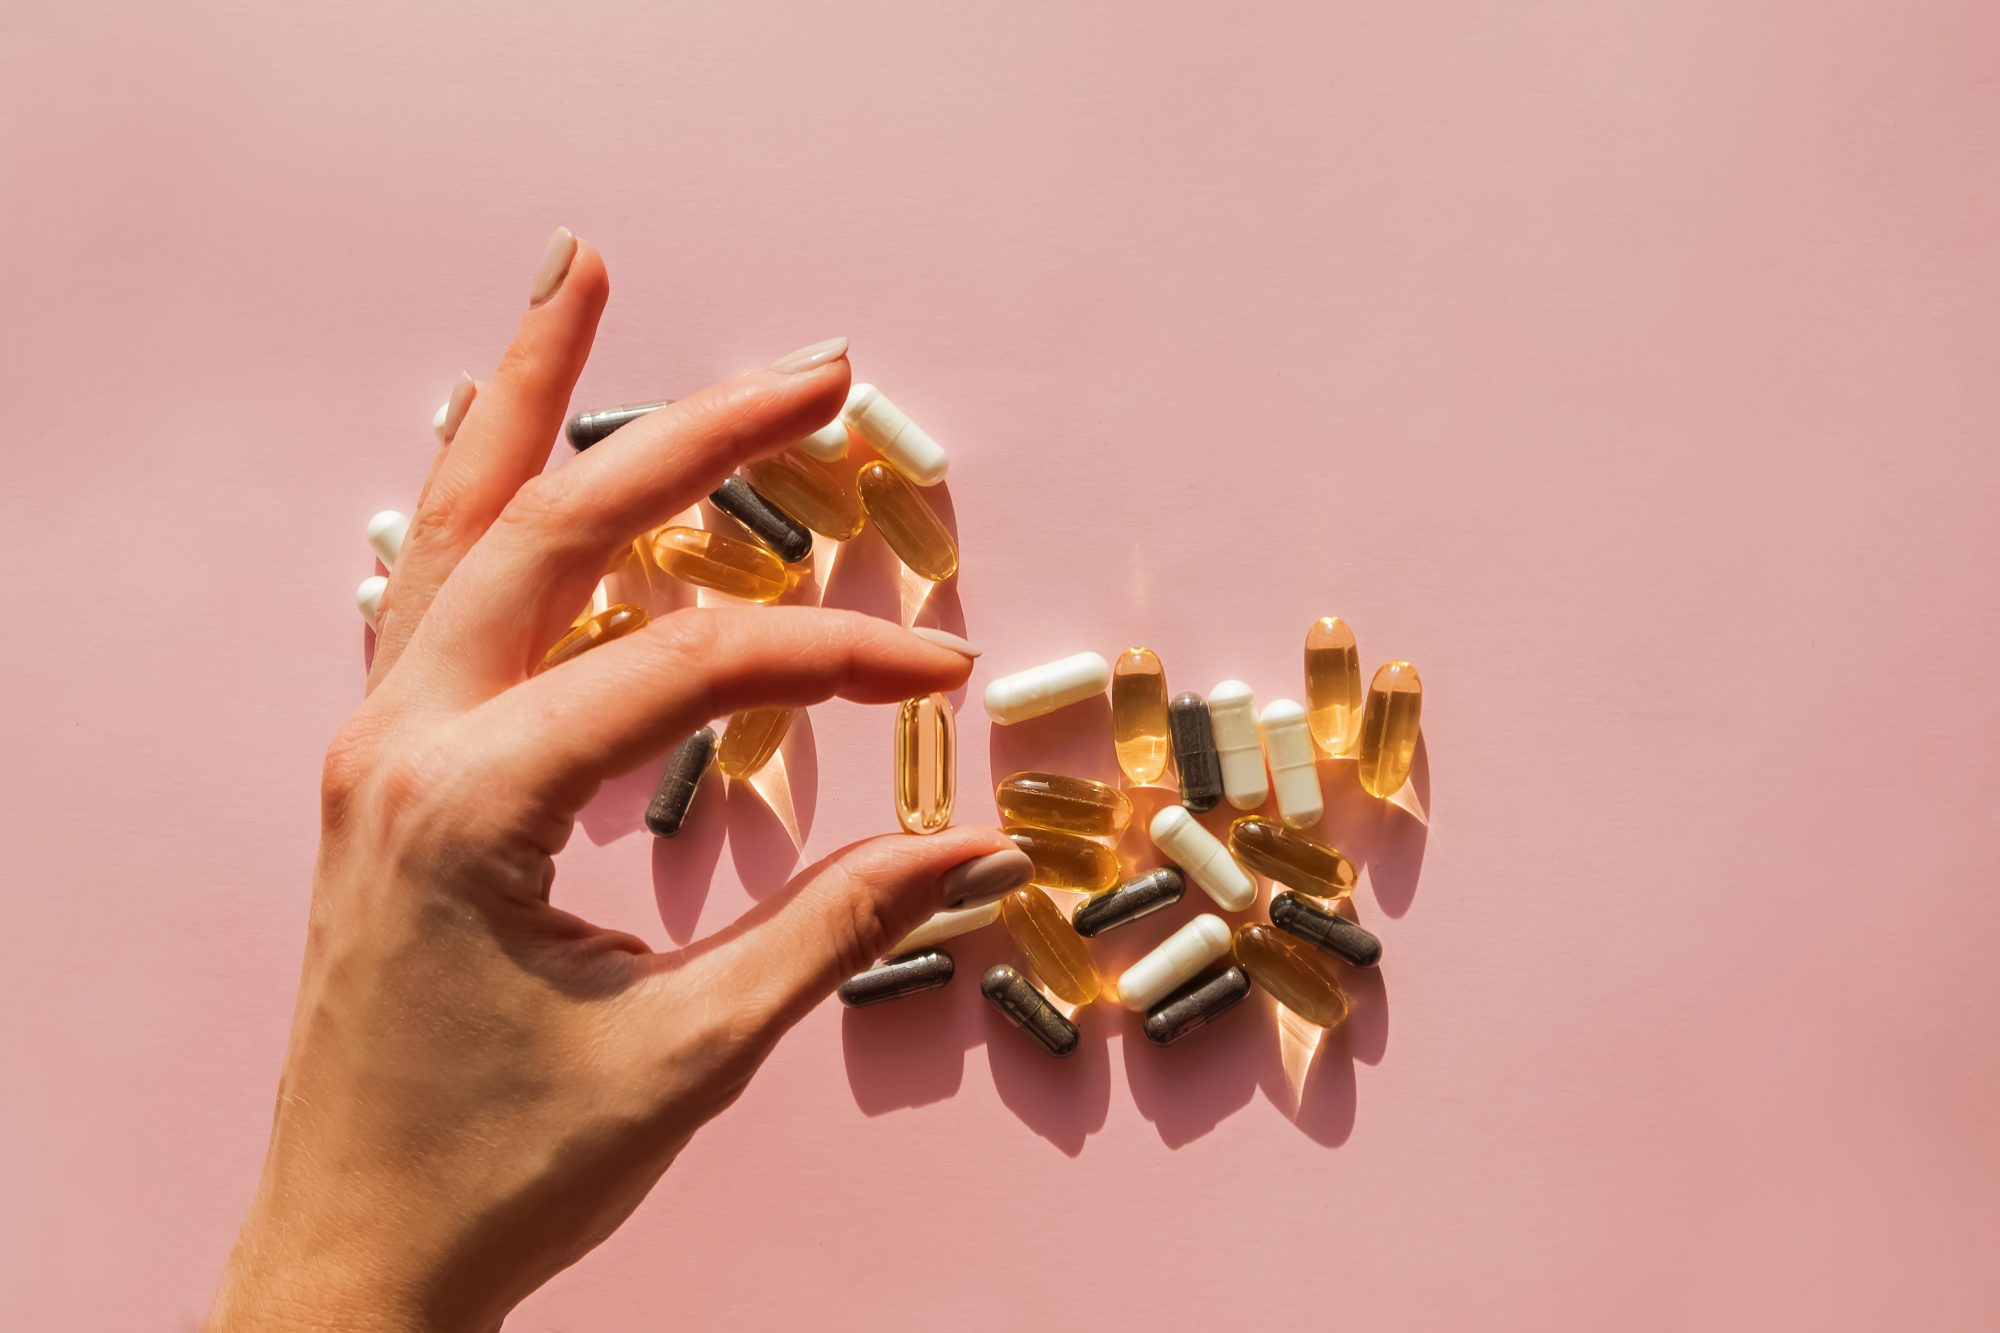 Immune Booster in the Age of Covid , Woman's hand holding a pill or dietic supplement capsule